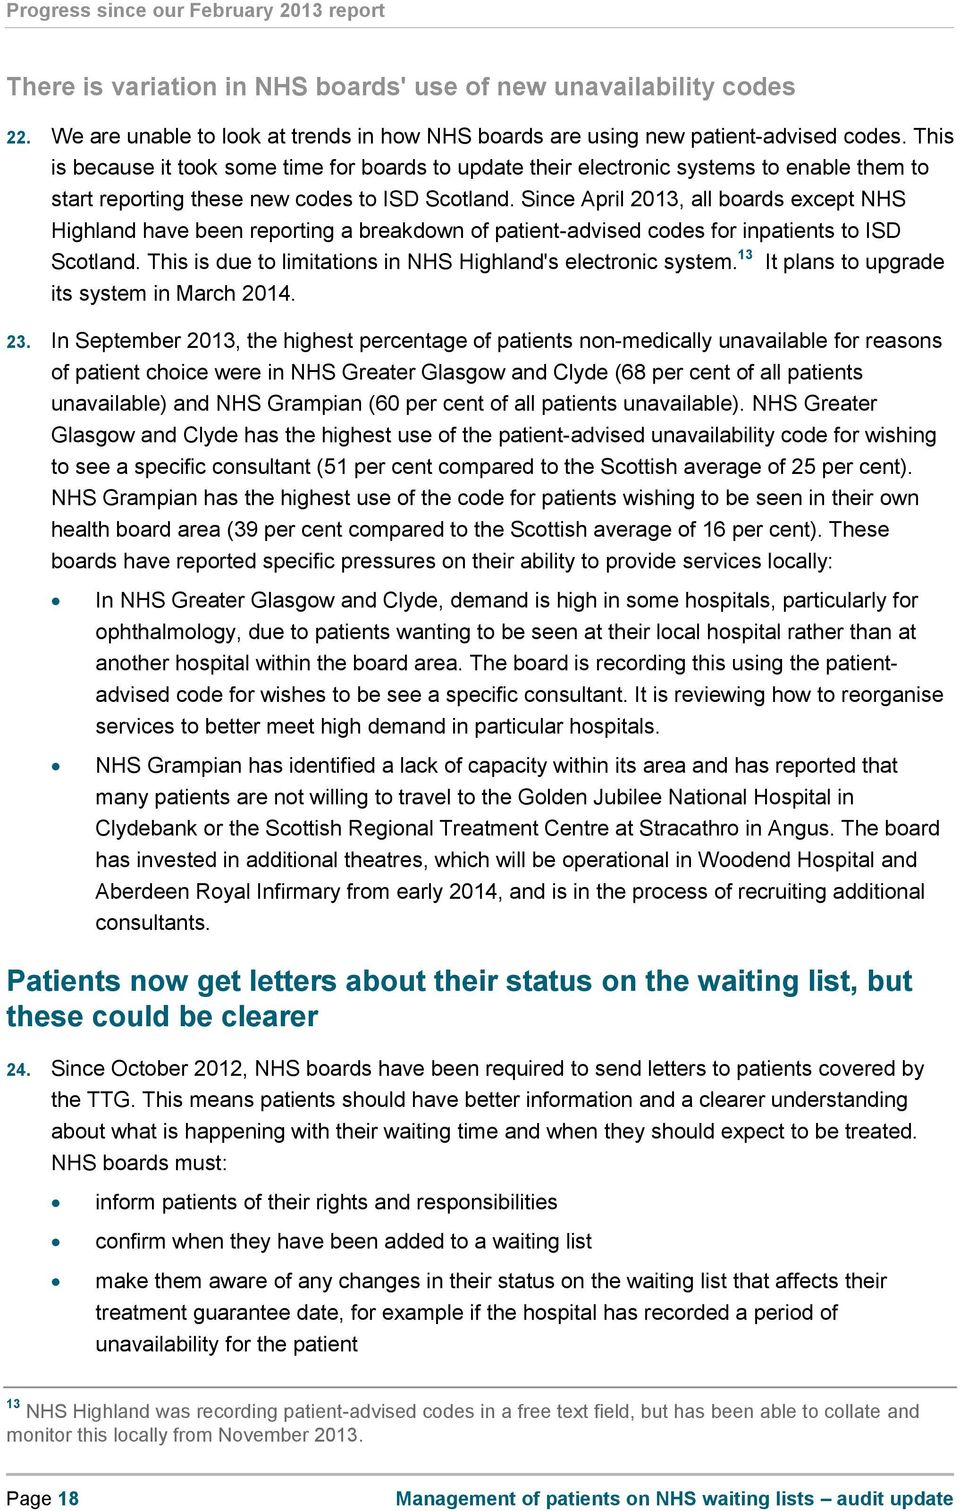 Since April 2013, all boards except NHS Highland have been reporting a breakdown of patient-advised codes for inpatients to ISD Scotland.